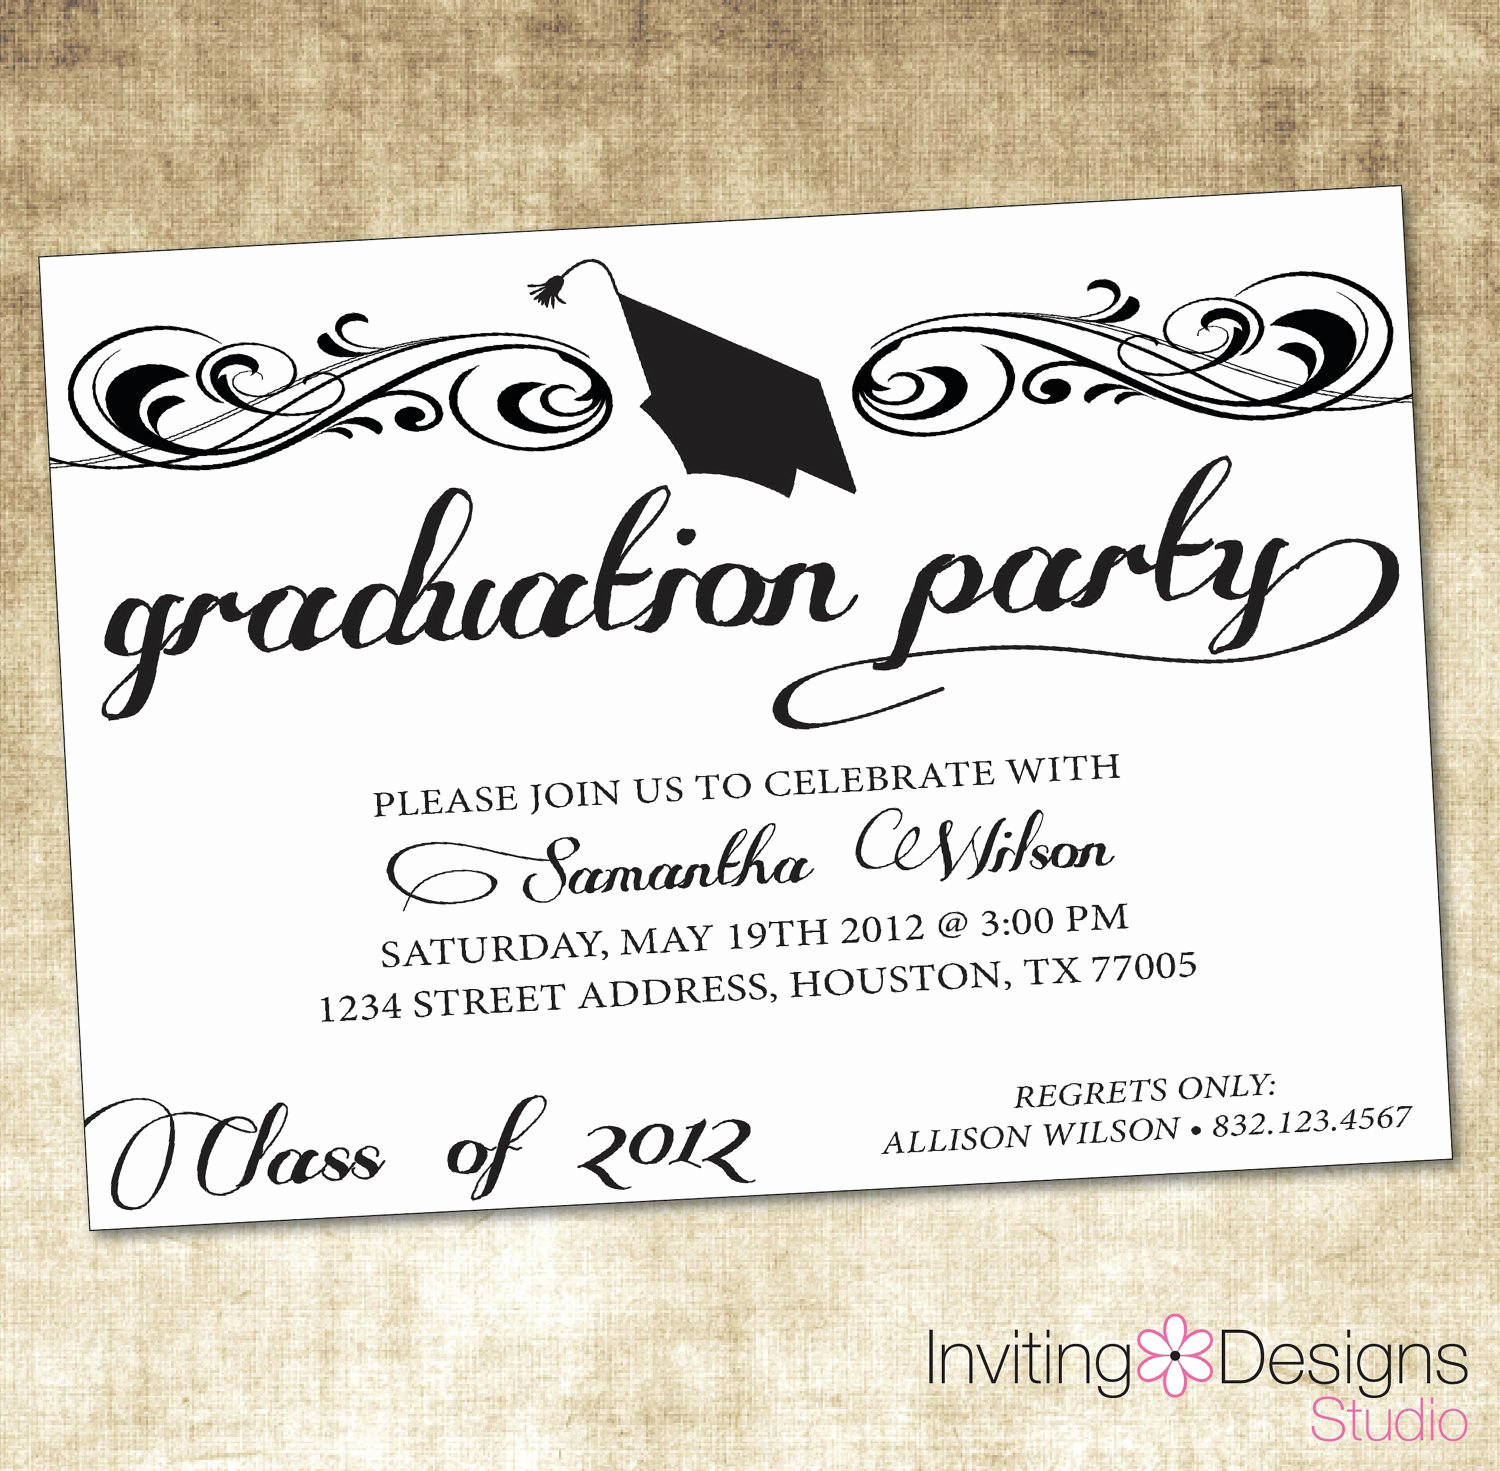 Graduation Party Invitation Wording Samples Fresh Free Graduation Invitation Templates Free Graduation